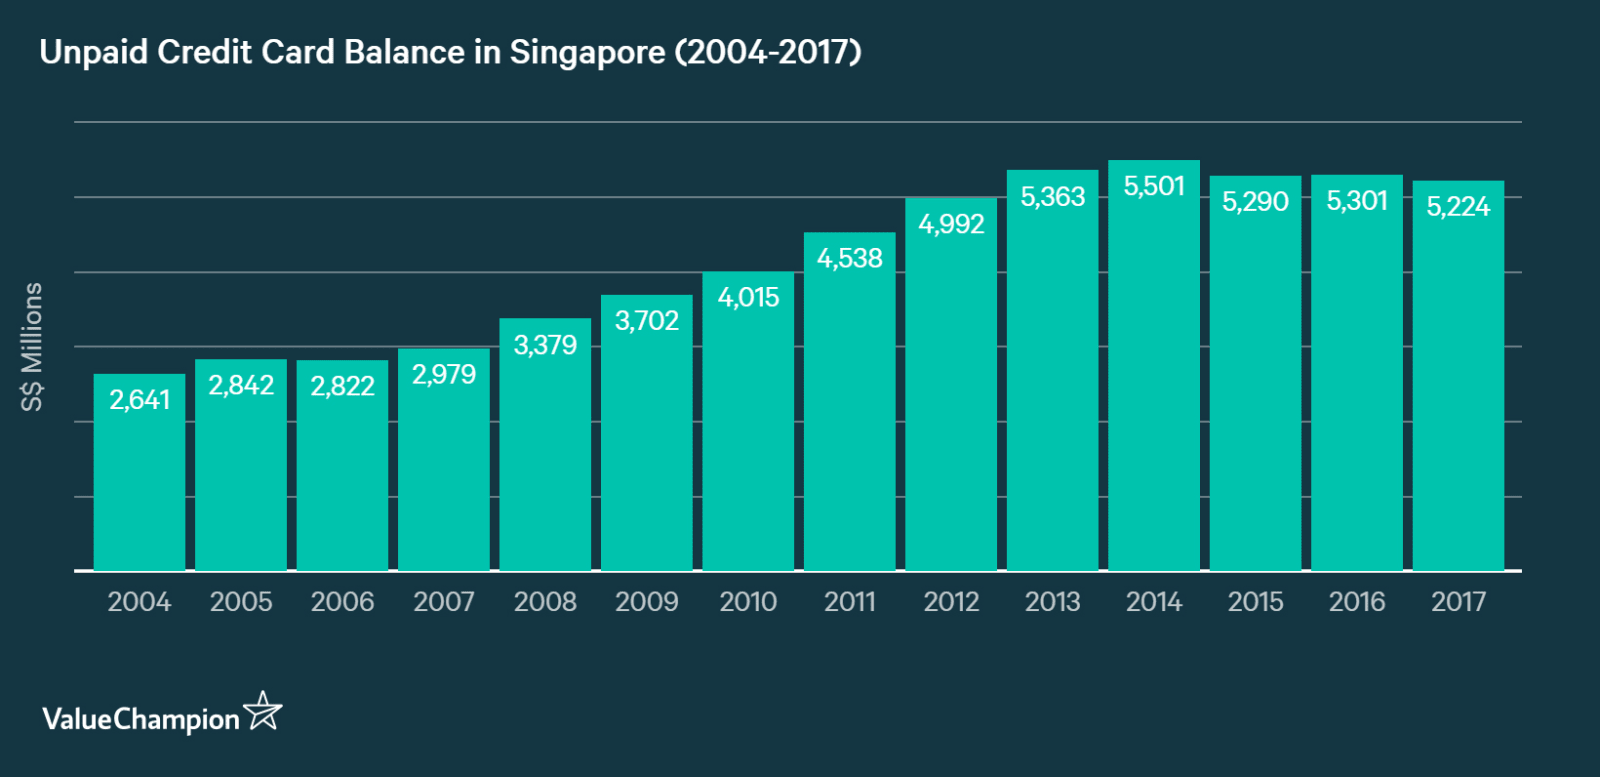 Growth of unpaid credit card debt in Singapore from 2004 to 2017